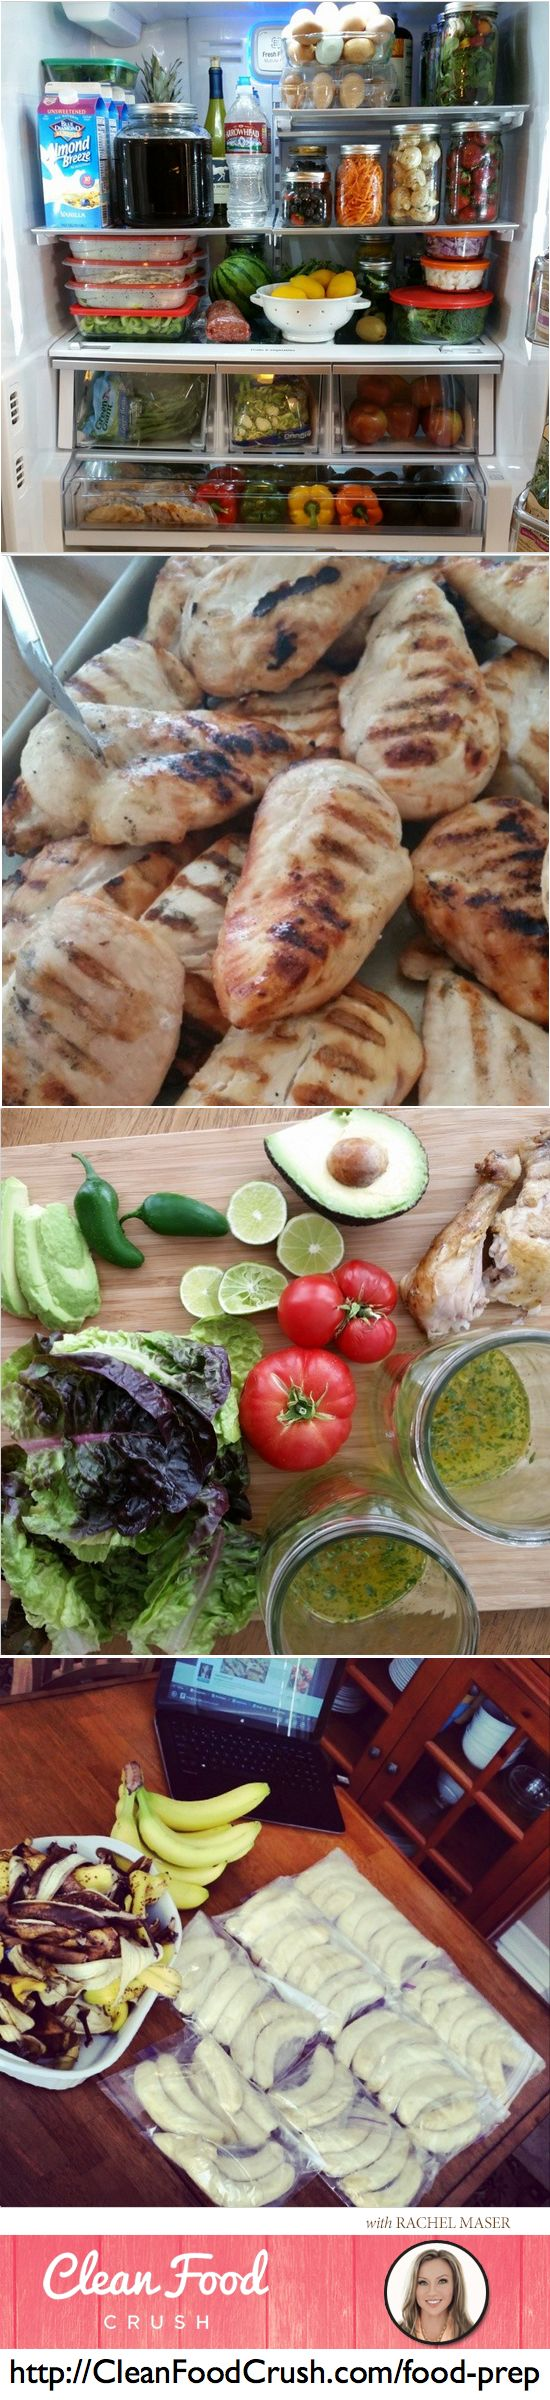 How to do clean meal prep - http://cleanfoodcrush.com/food-prep/